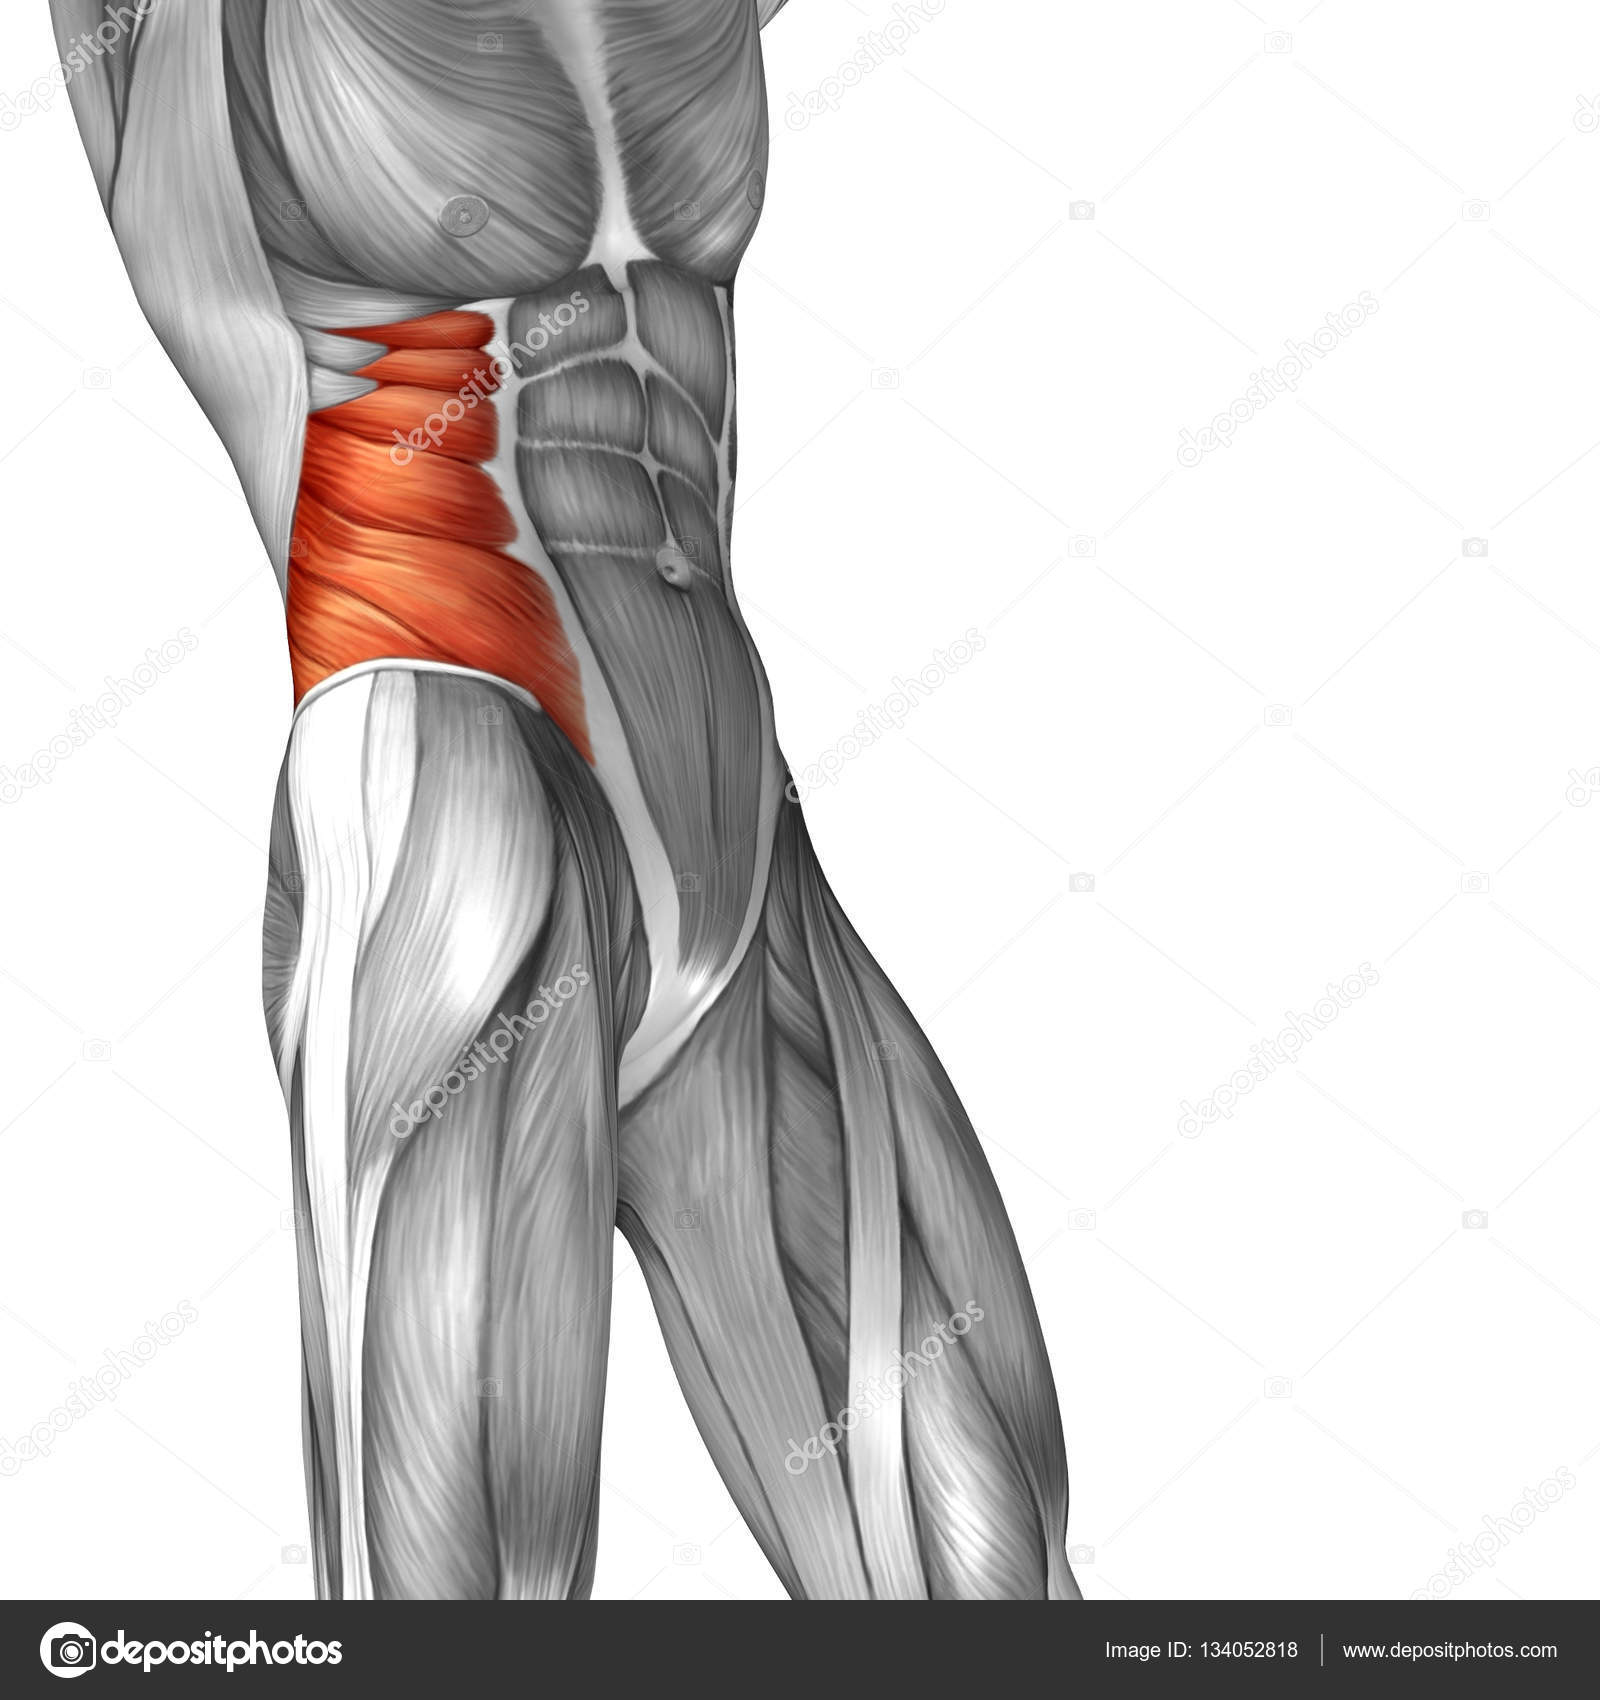 Human Obliques Muscles Stock Photo Design36 134052818